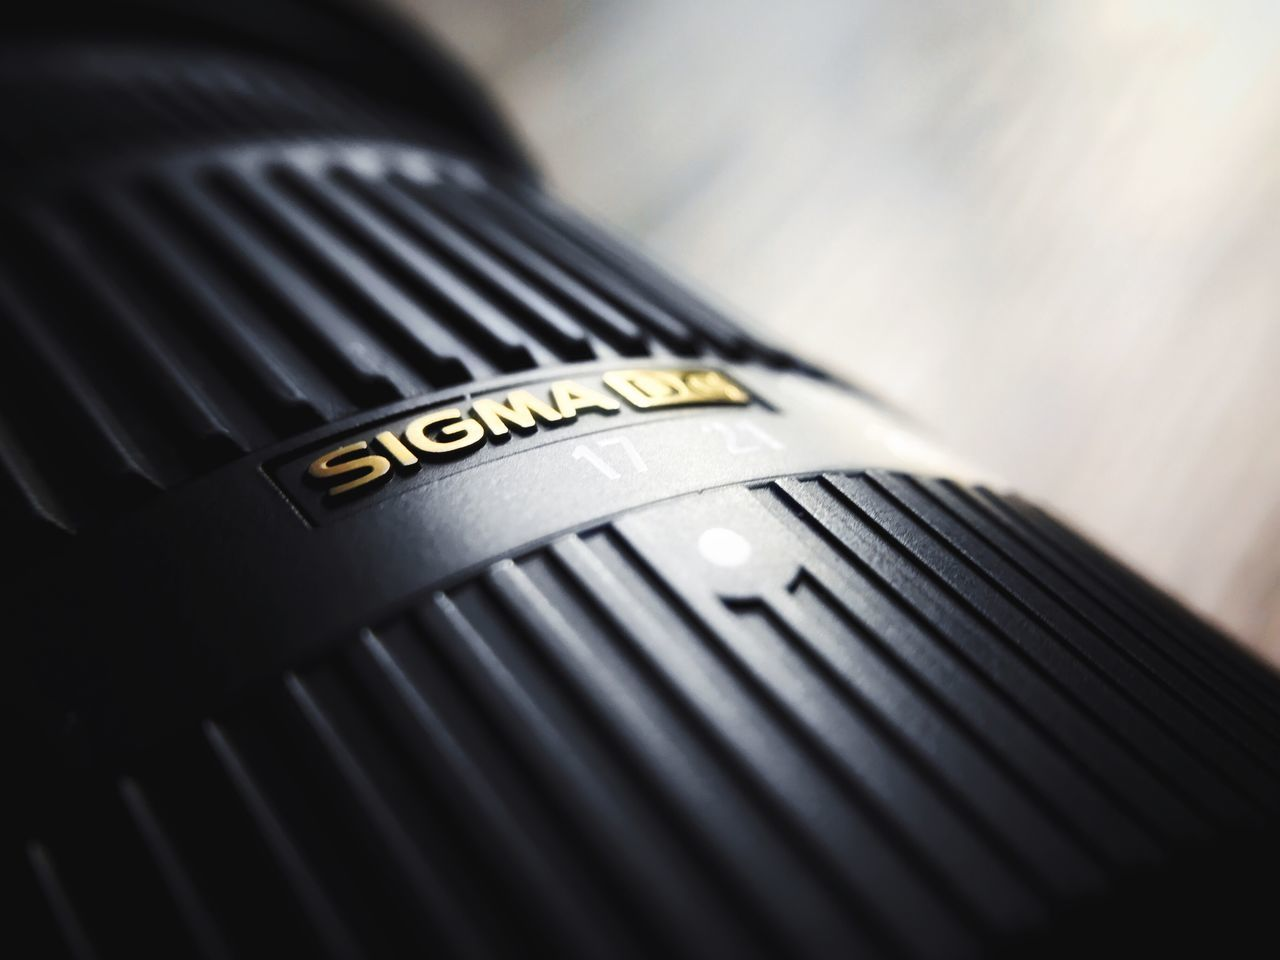 Sigma ShotOnIphone IPhoneography Shotoniphone7plus IPhone Iphoneonly Black Color Close-up Technology No People Indoors  Day Tech Technology I Can't Live Without Lens Sigma 17-50mm Text